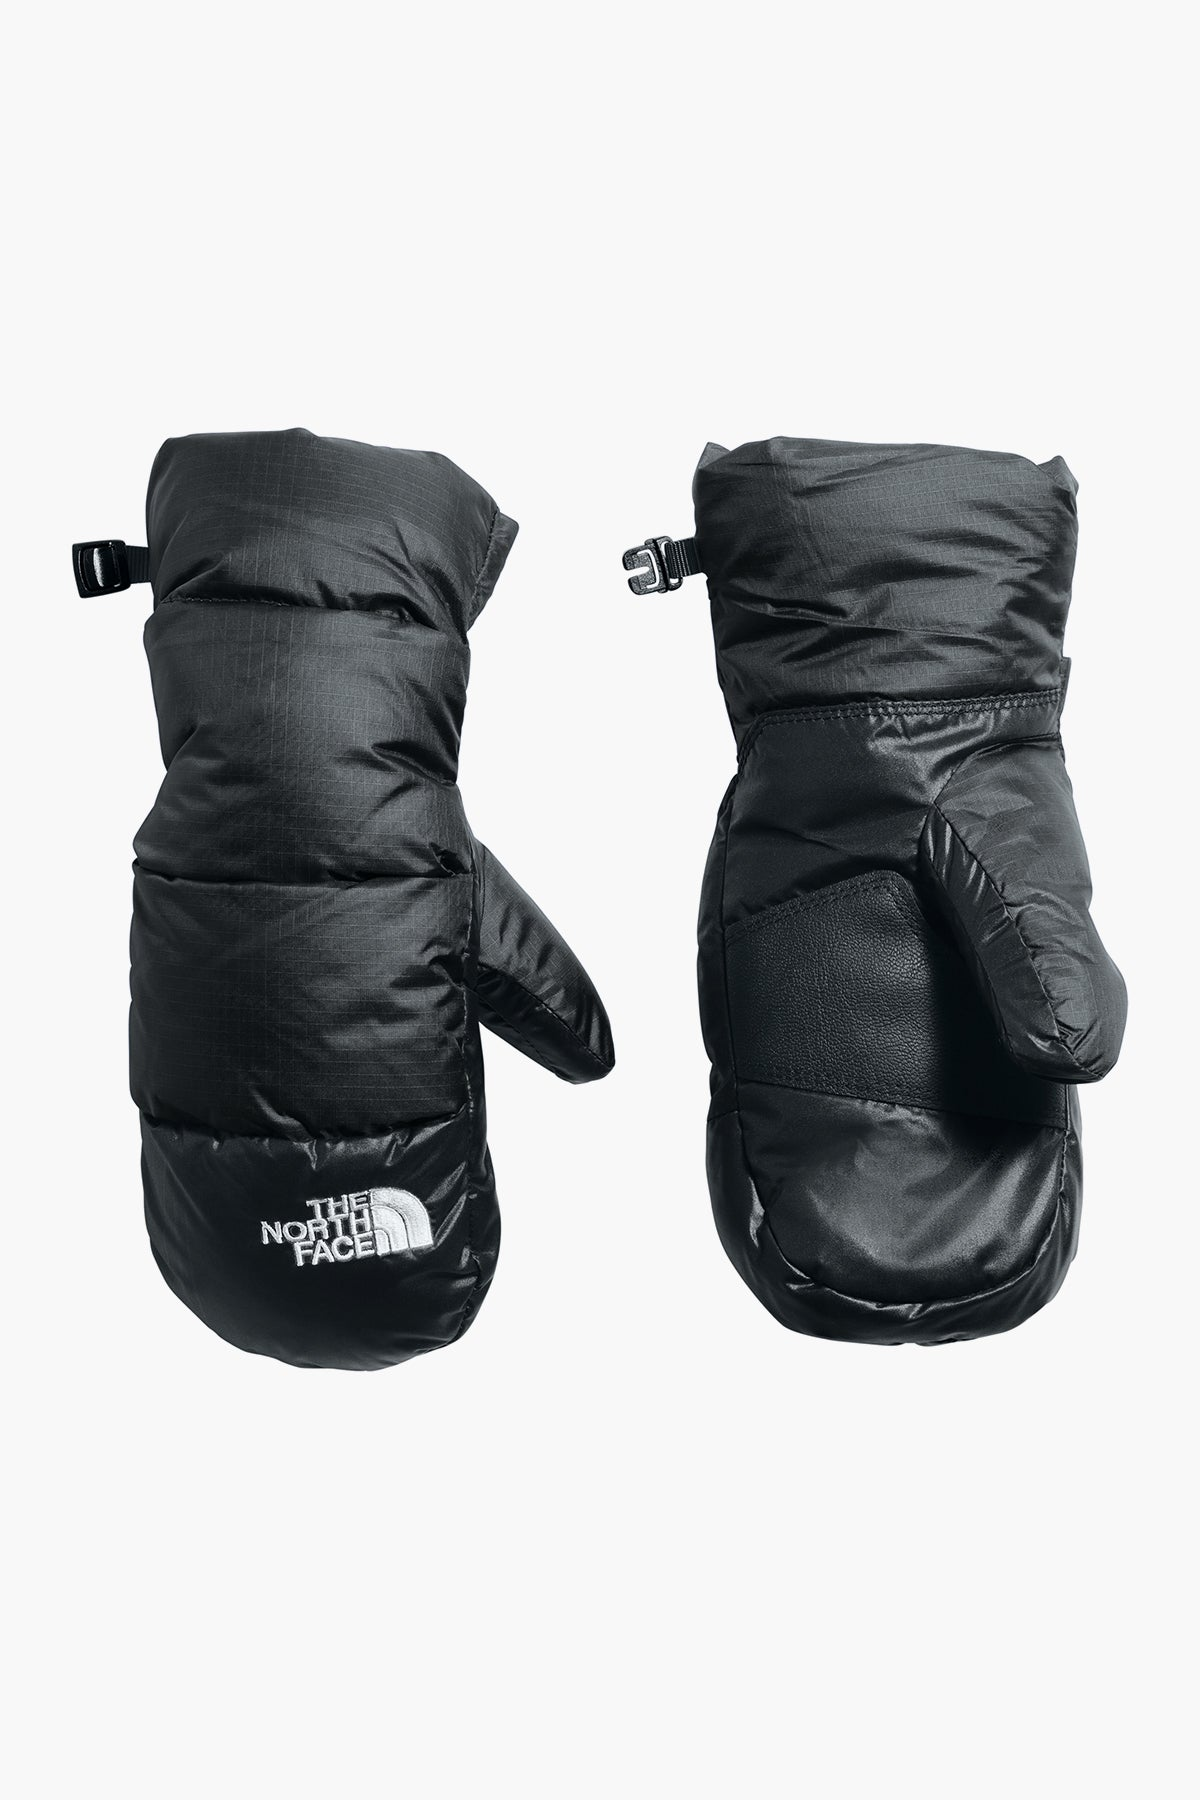 The North Face Kids Nuptse Mitt